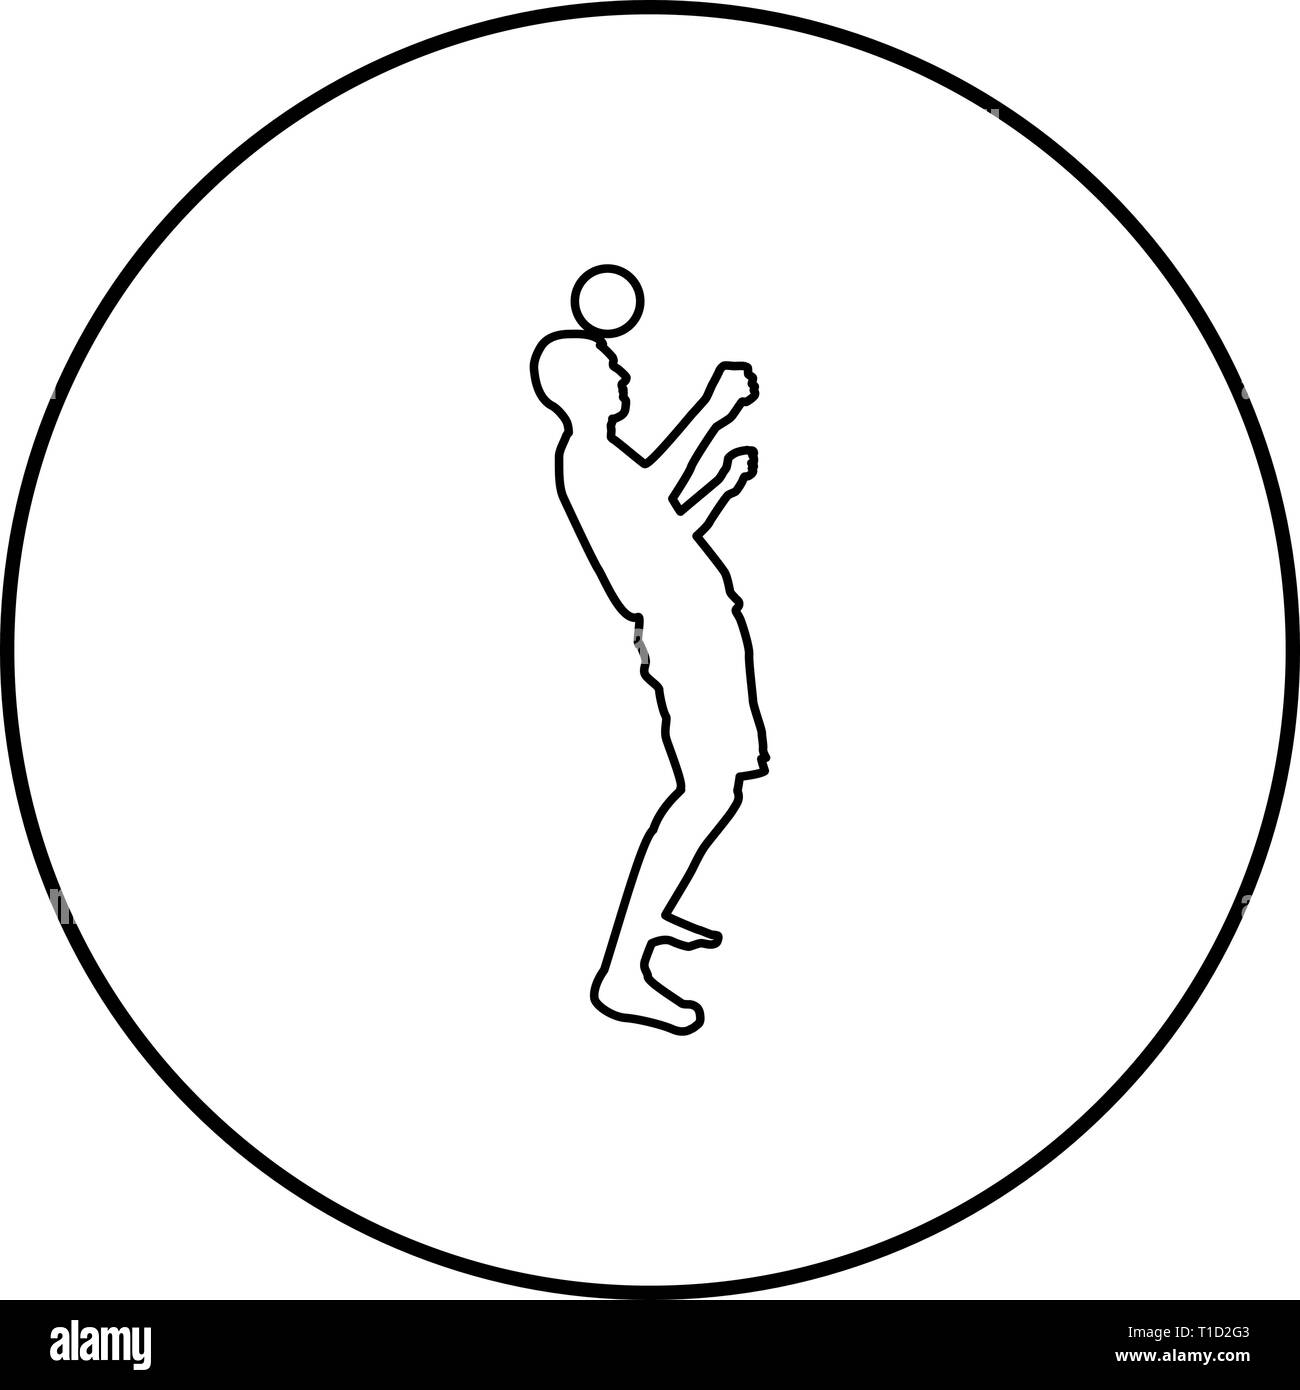 Man kicks the ball on head. Soccer player taps ball with his head Football concept Juggling trick with ball icon outline black color vector in circle Stock Vector